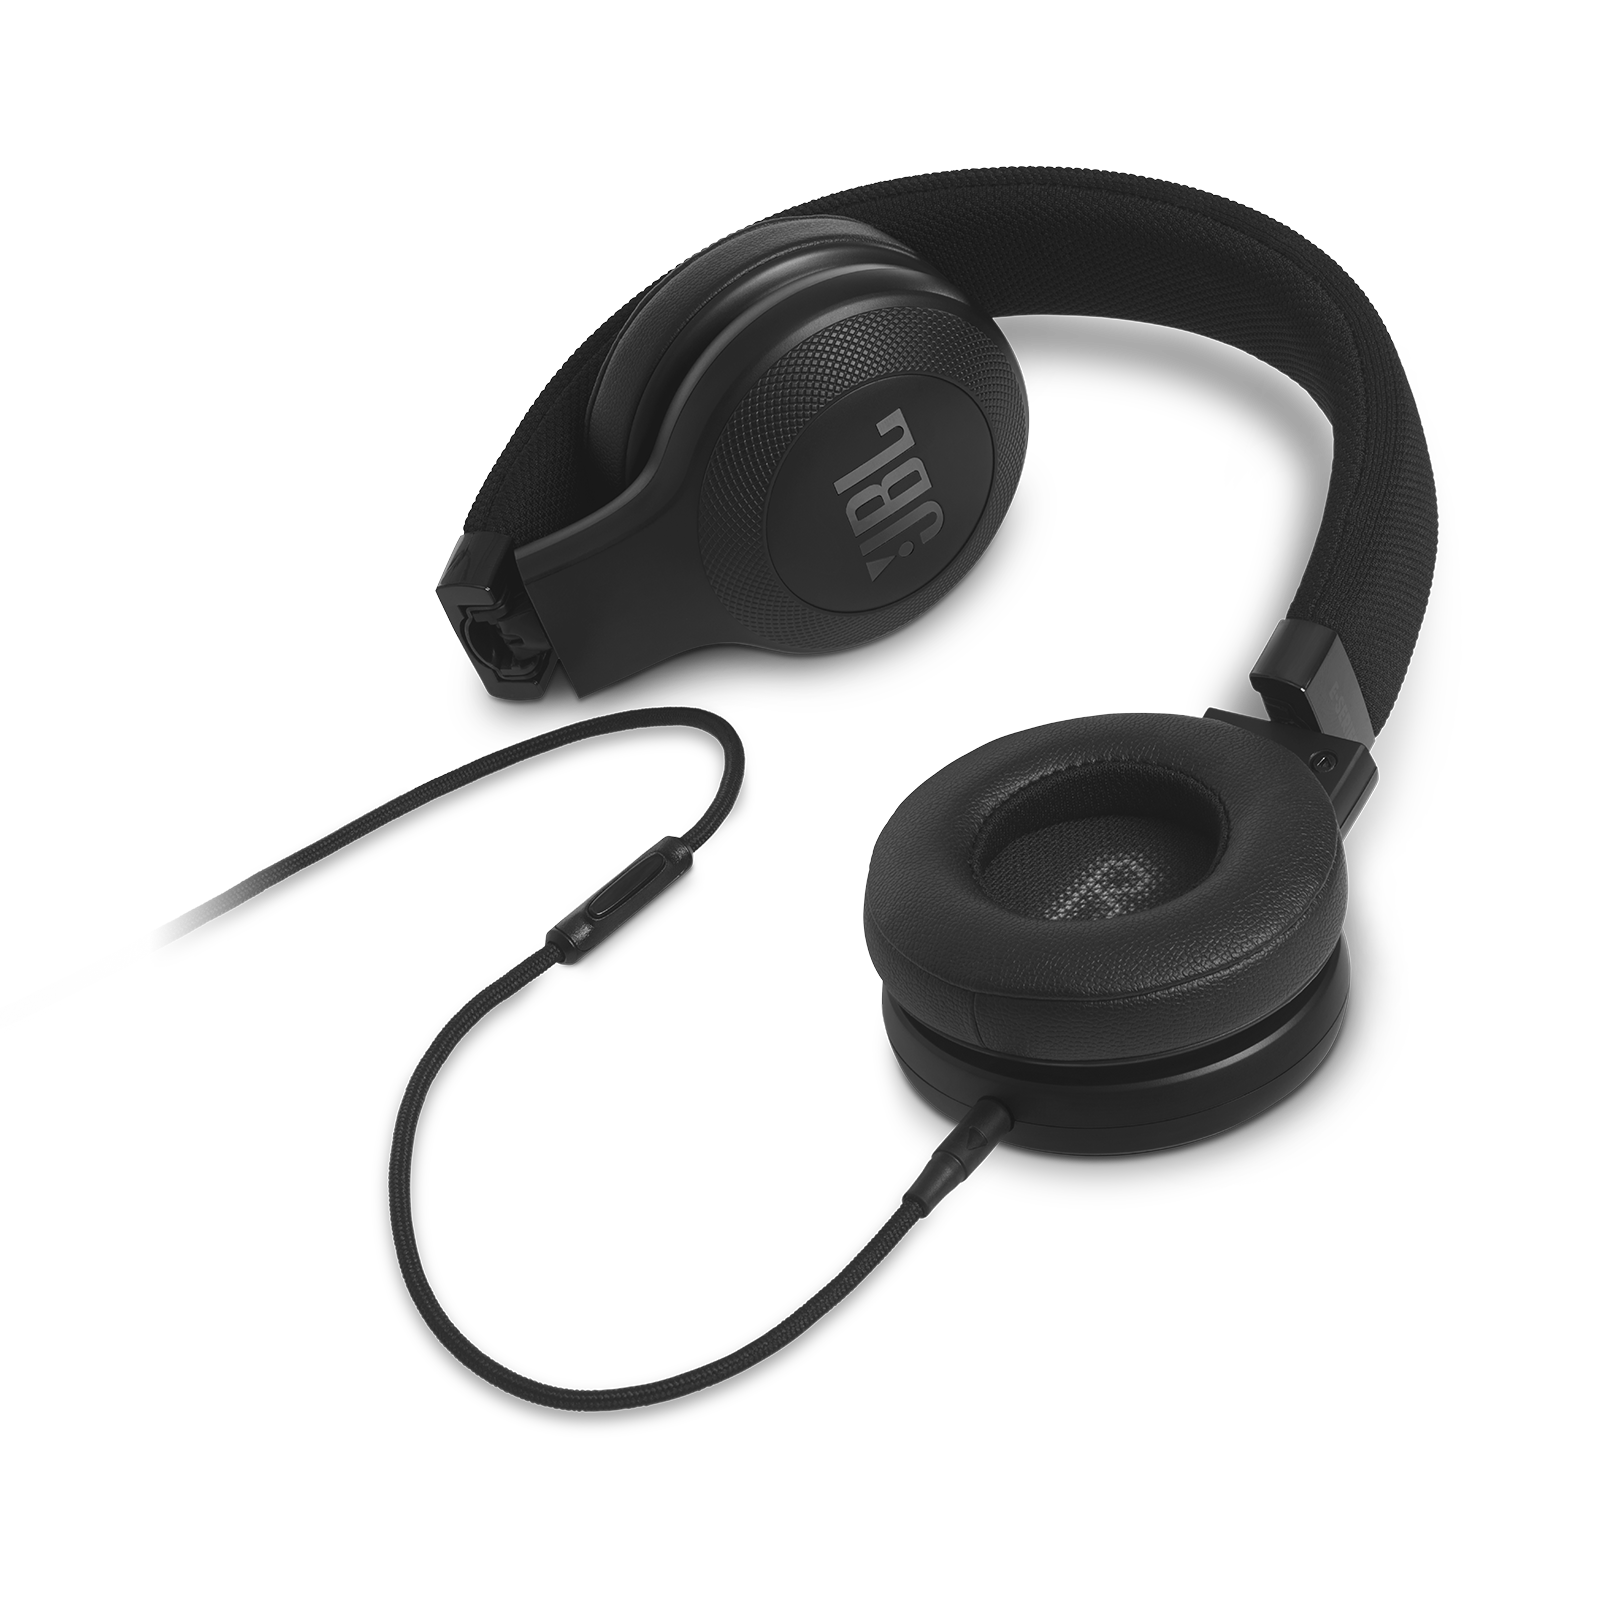 JBL E35 On-Ear Headphones w/ One Button Microphone (various colors) $13.45 + Free S/H